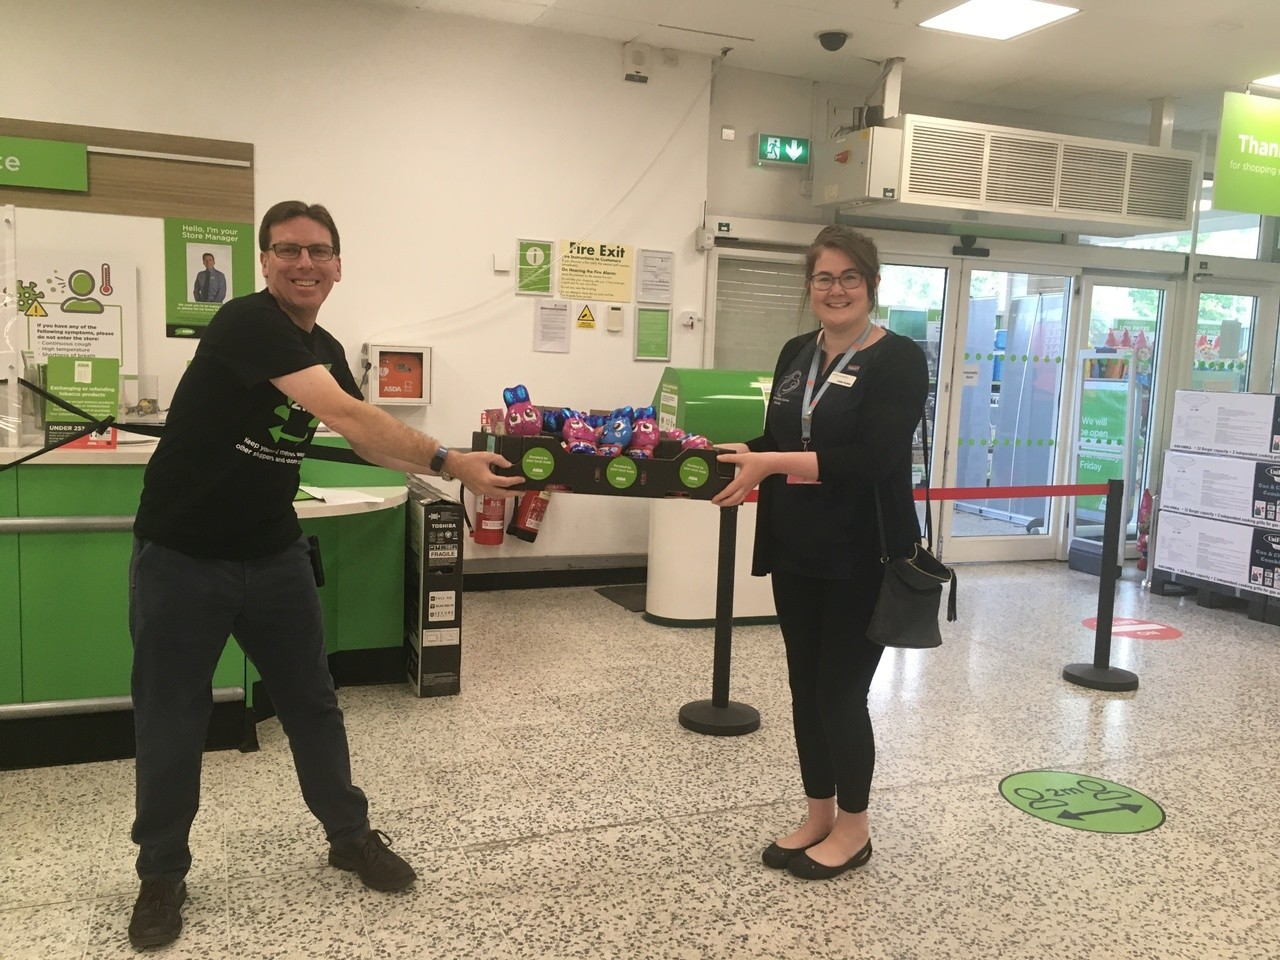 Donation for midwives | Asda St Austell